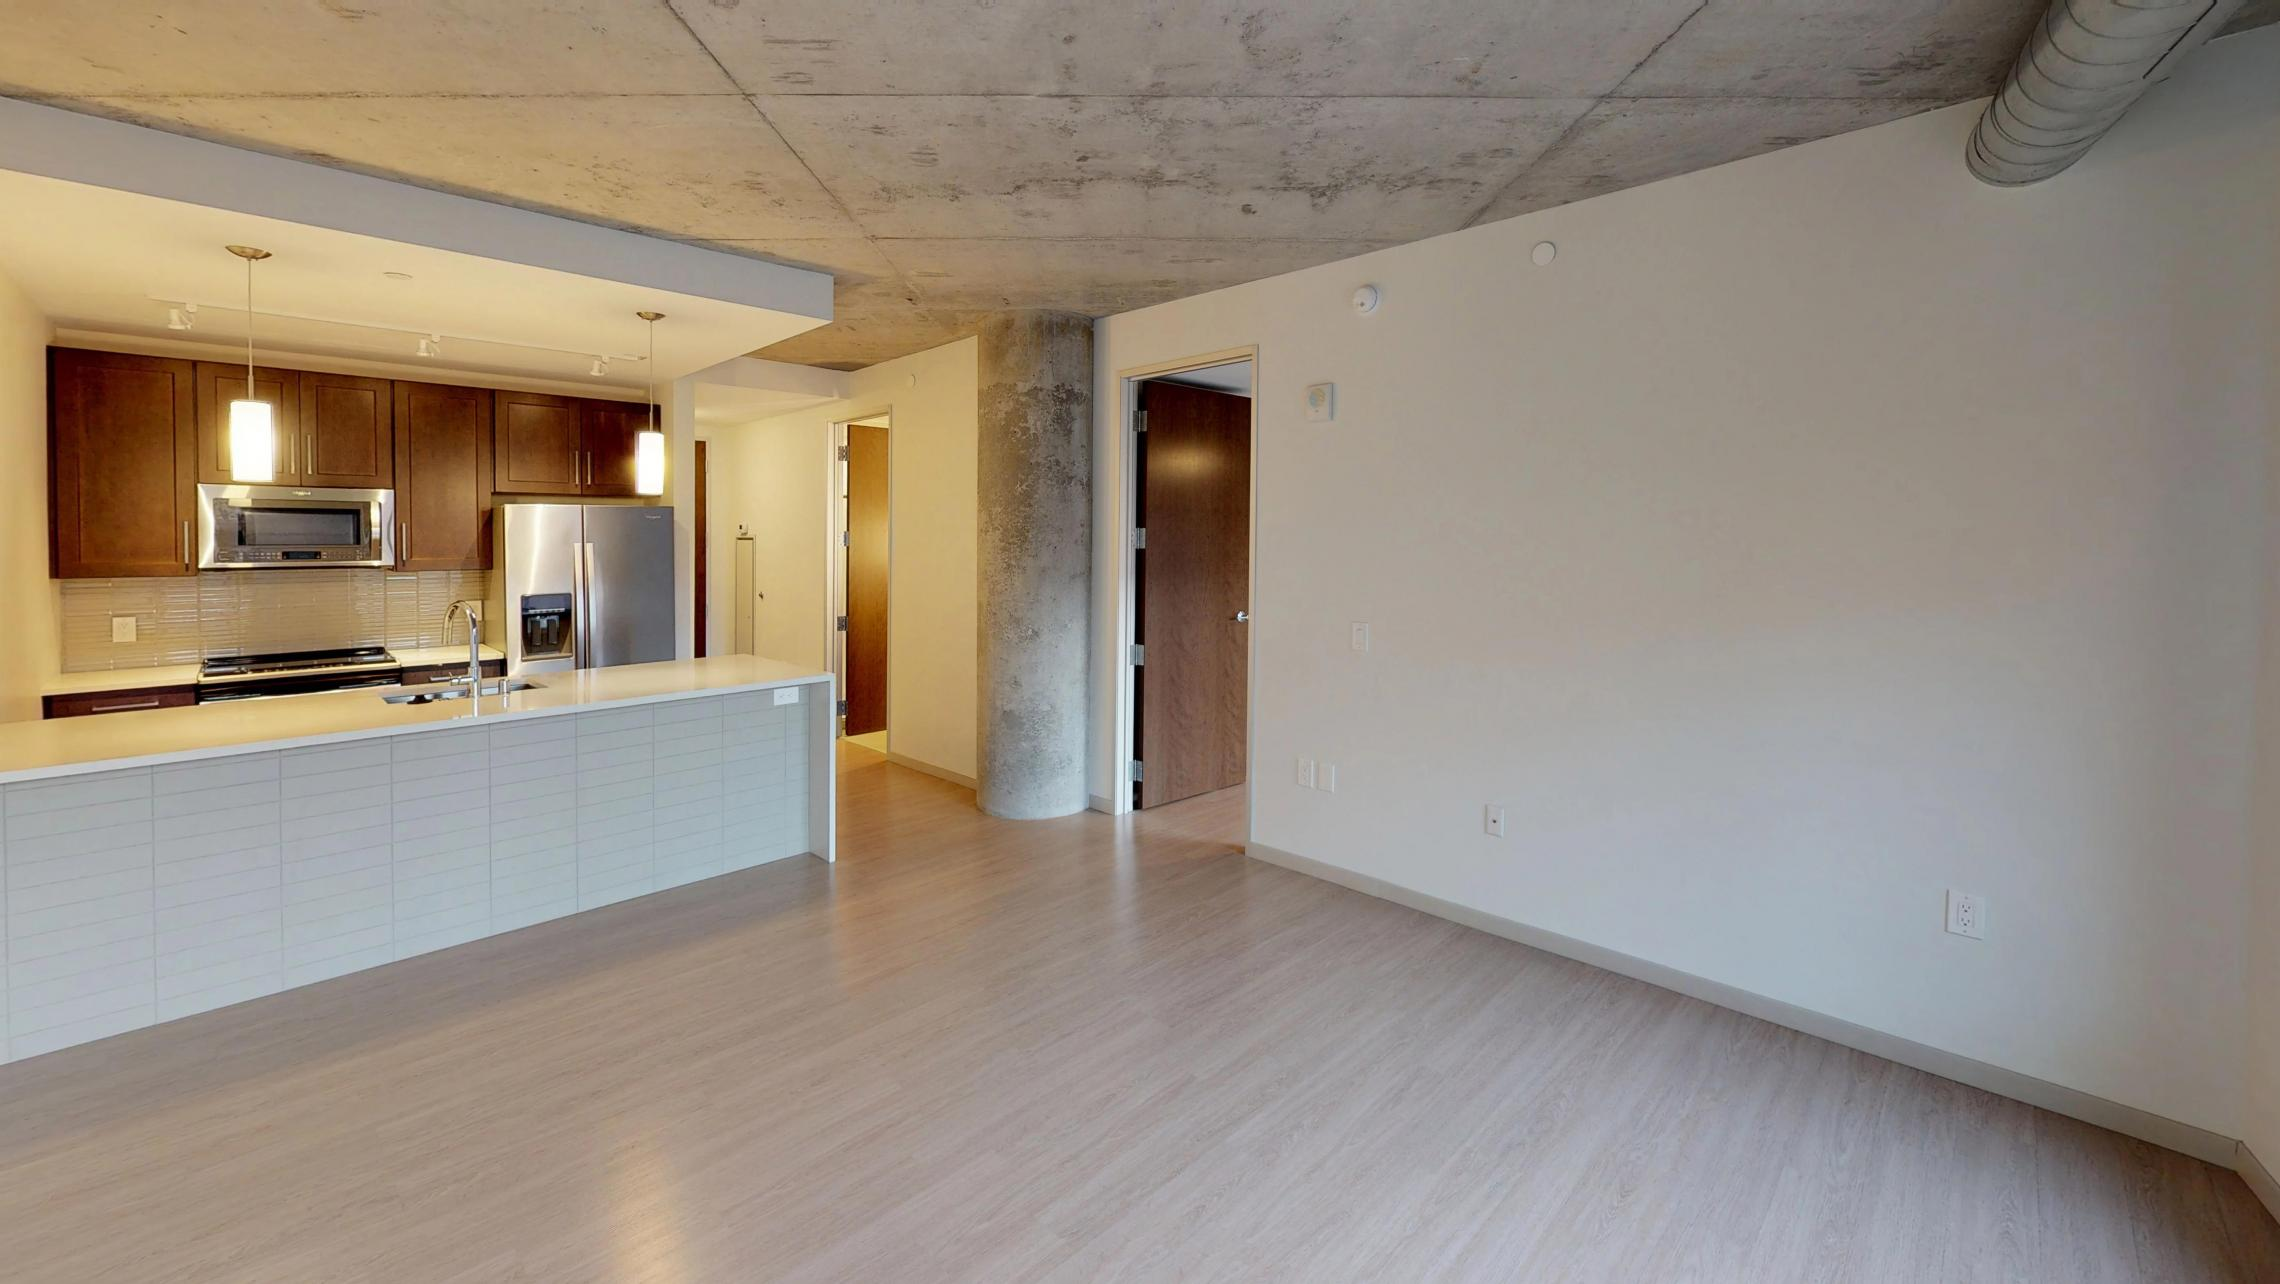 Pressman-Apartment-217-One-Bedroom-Luxury-Downtown-Upscale-Modern-Downtown-Madison-Capitol-Square-Kitchen-Island